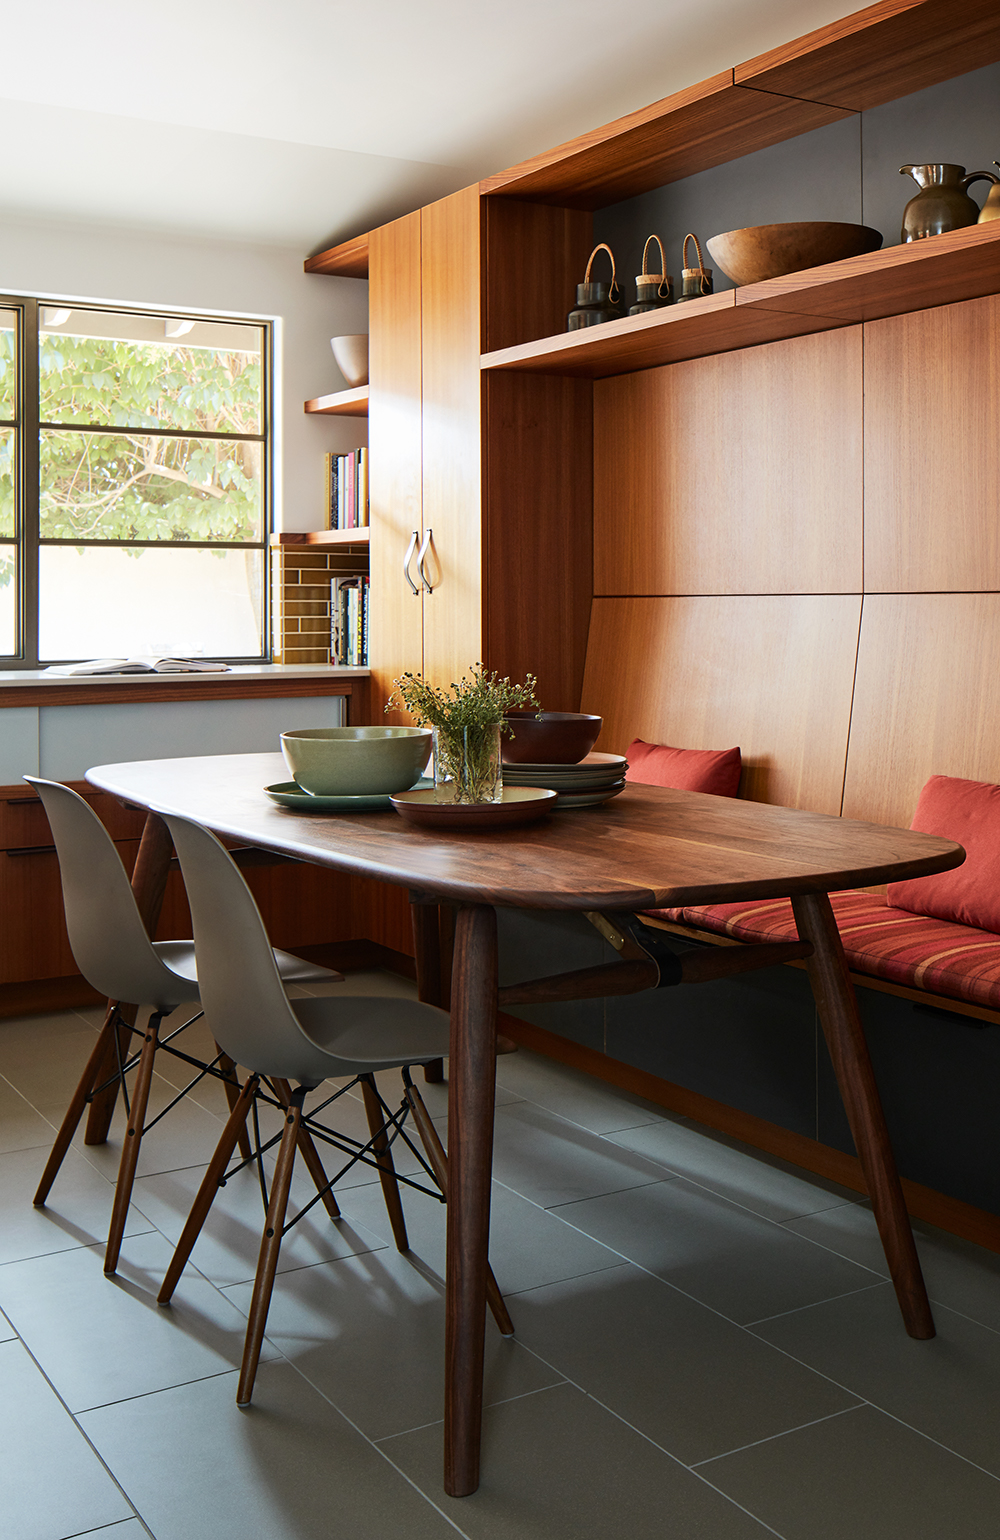 This informal dining table was made custom by Jacob May, and the custom, built-in bench was upholstered in a rich striped fabric from from Knoll.